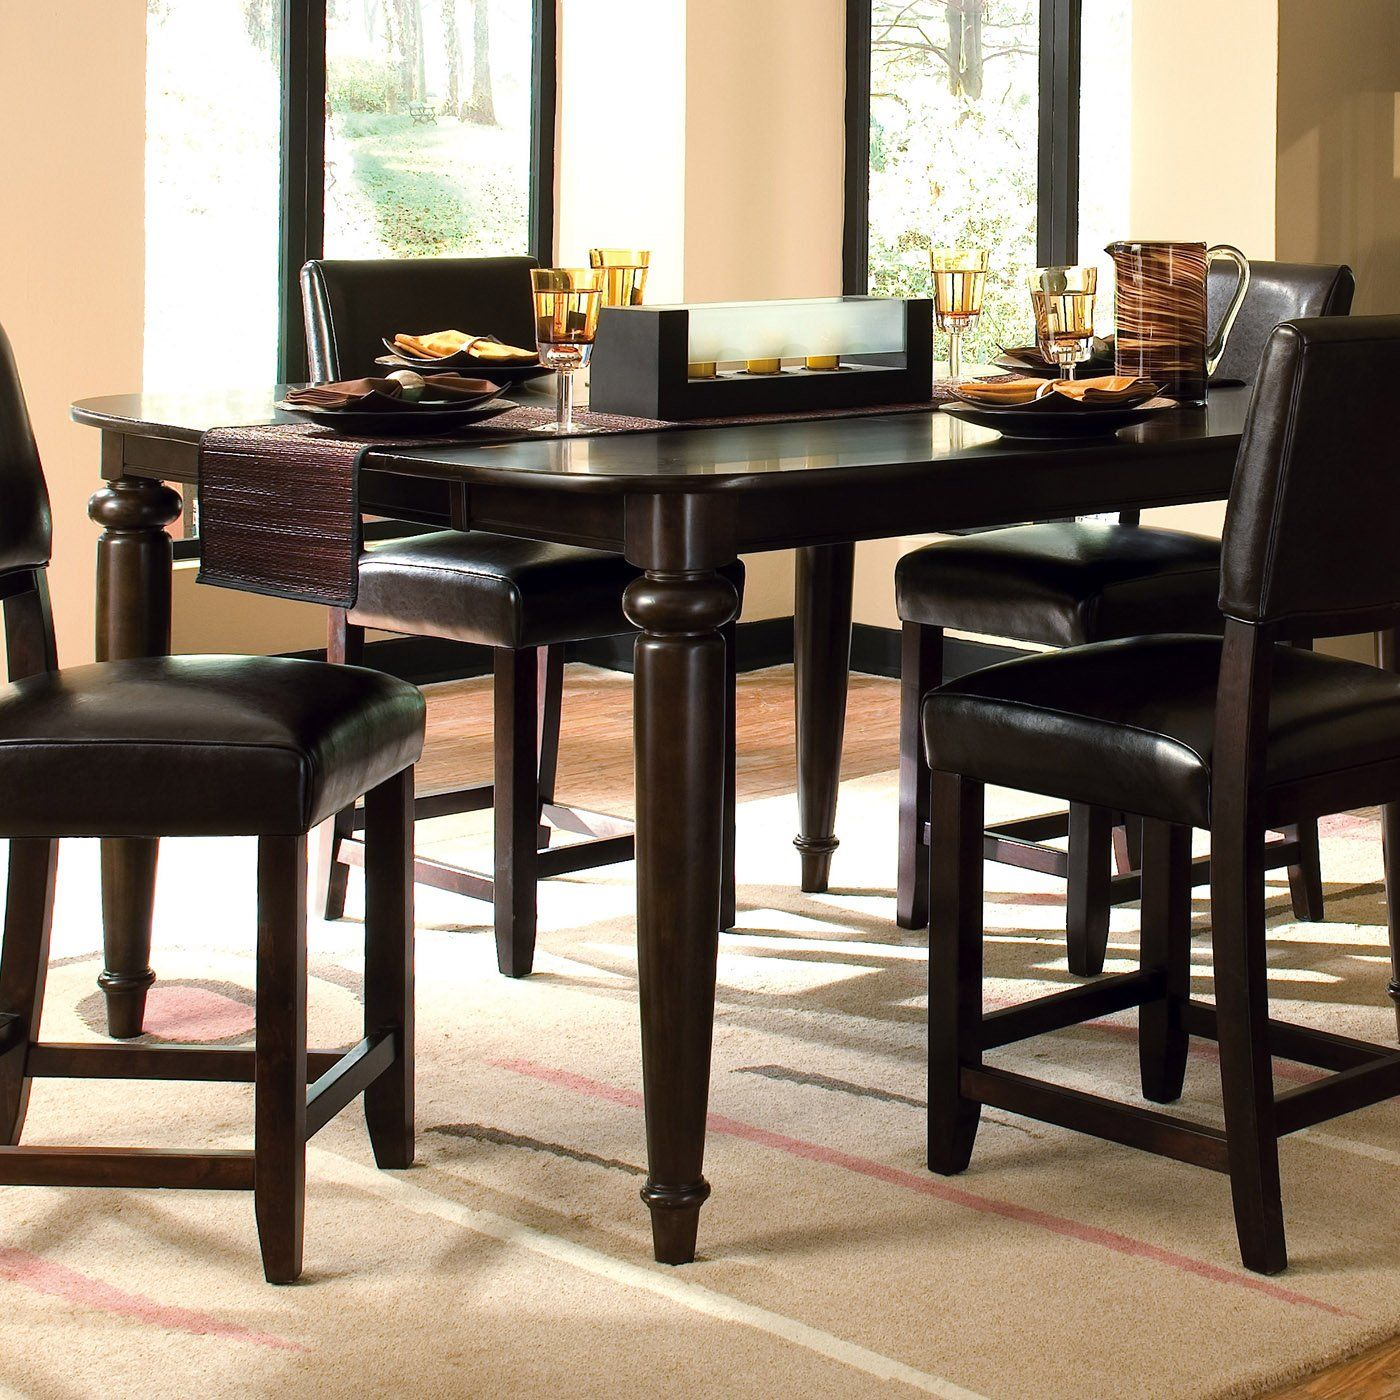 Charming Kincaid Furniture 46 058 Somerset Tall Dining Table, Espresso